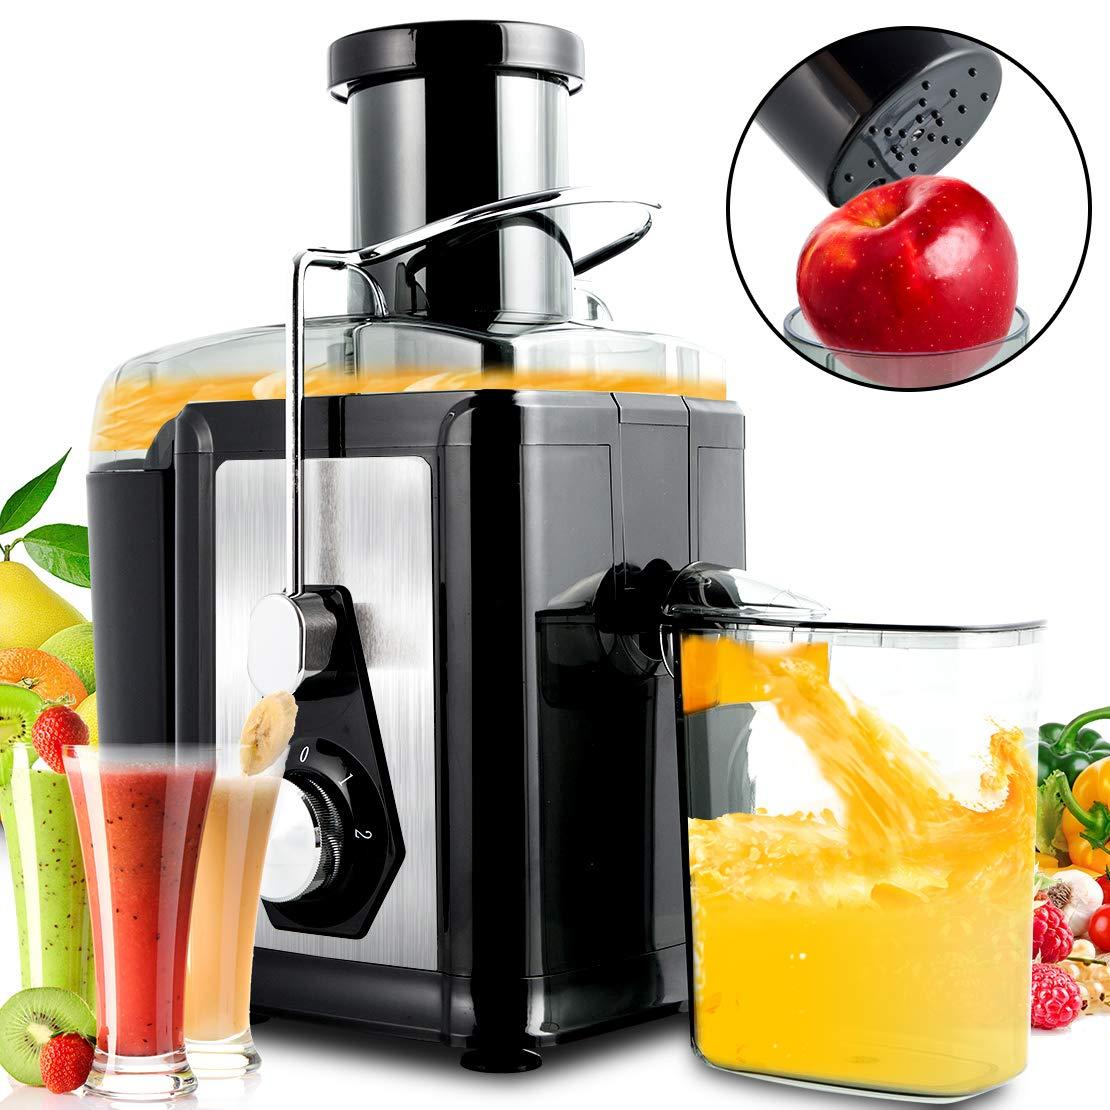 Slow Juice Machine,Centrifugal Masticating Juice Extractor Stainless Steel,Fruit and Vegetable Juicer with Safe Lock and Easy to Clean 700 watt 220V